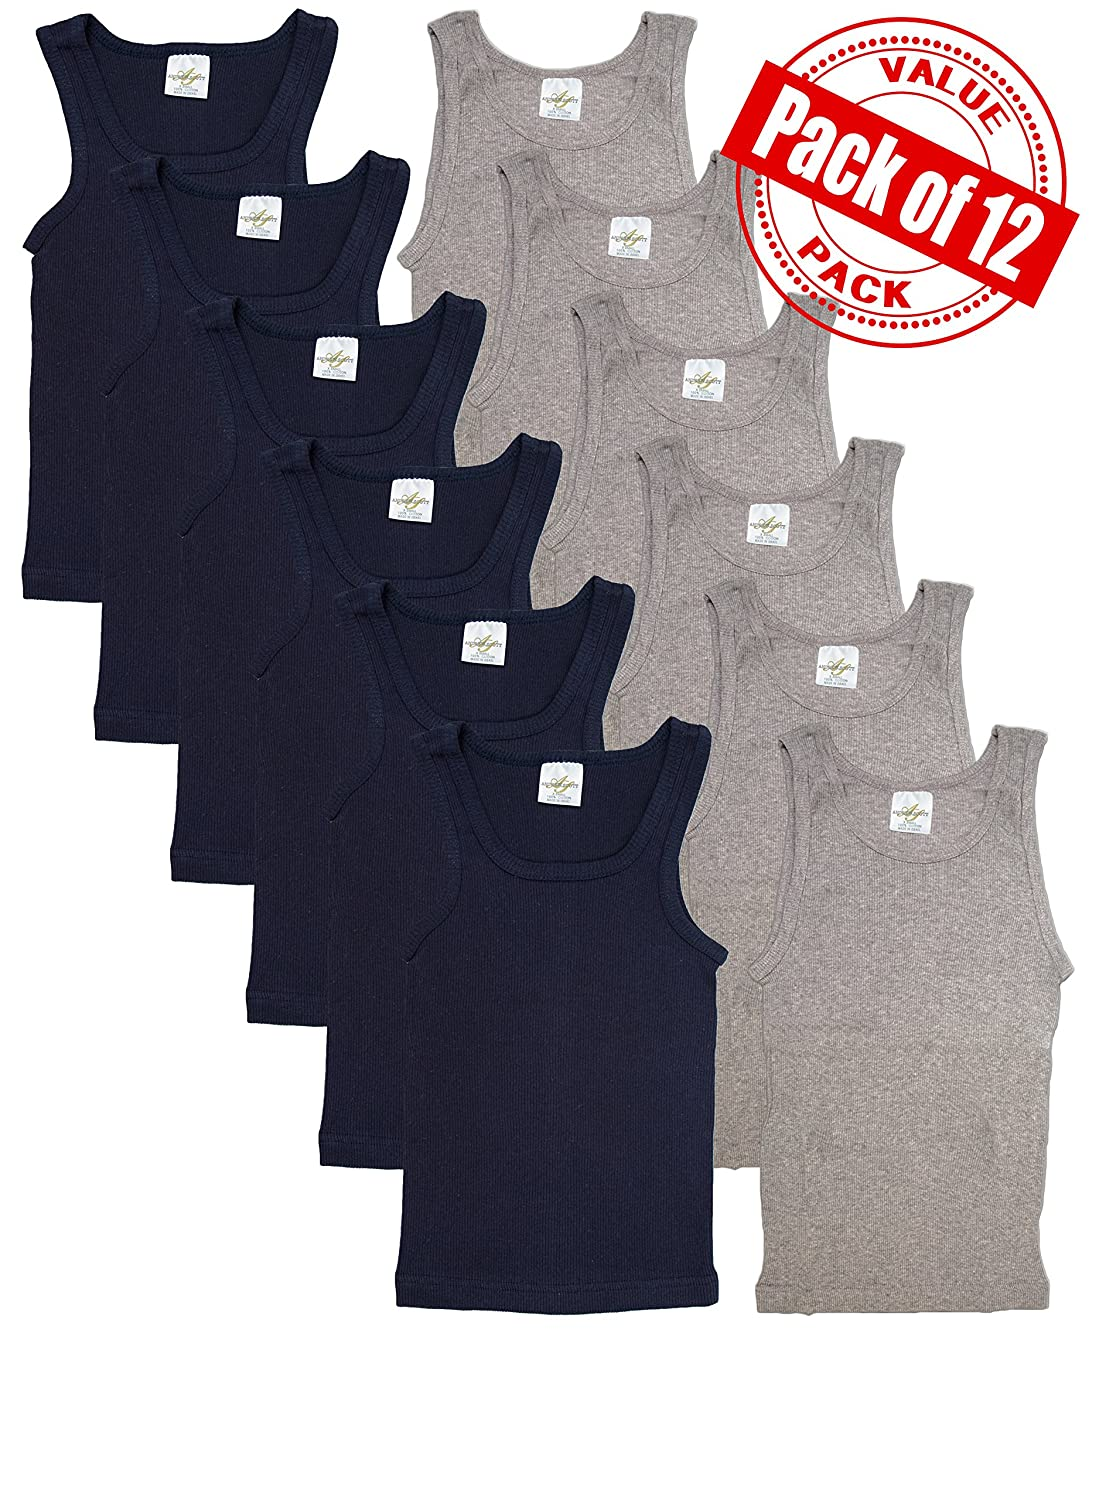 Andrew Scott Basics Boys 12 Pack Color A Shirt Tank Top Undershirts 78392CX6